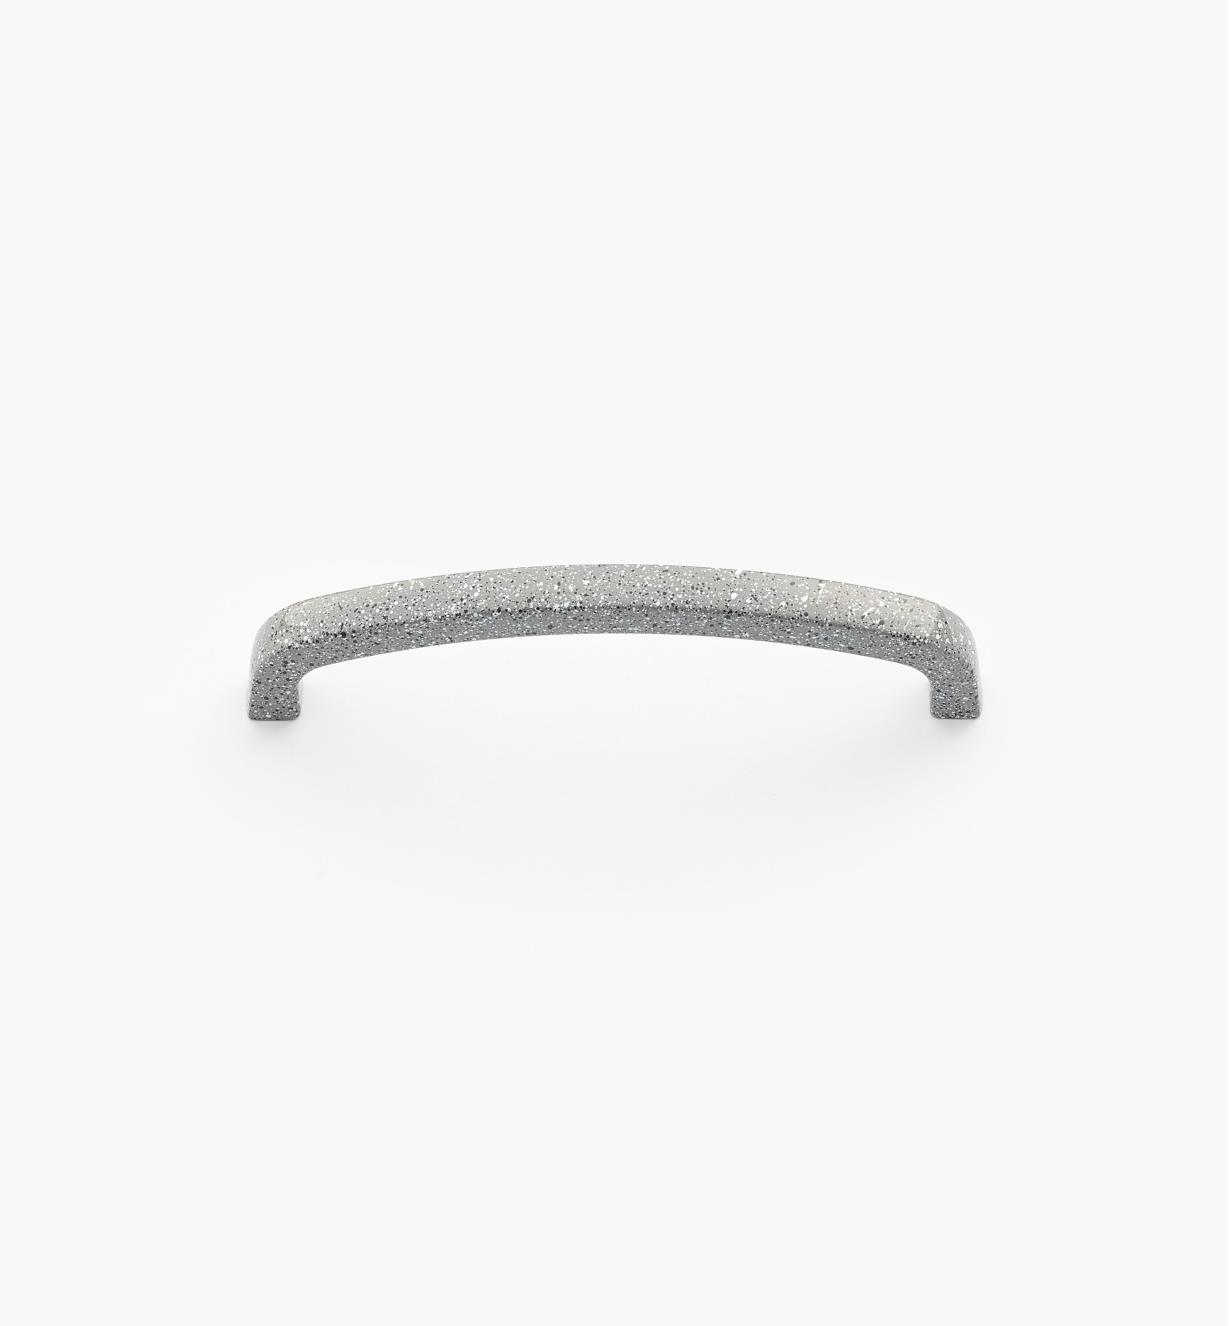 00W4522 - 96mm Speckled Gray Wire Pull